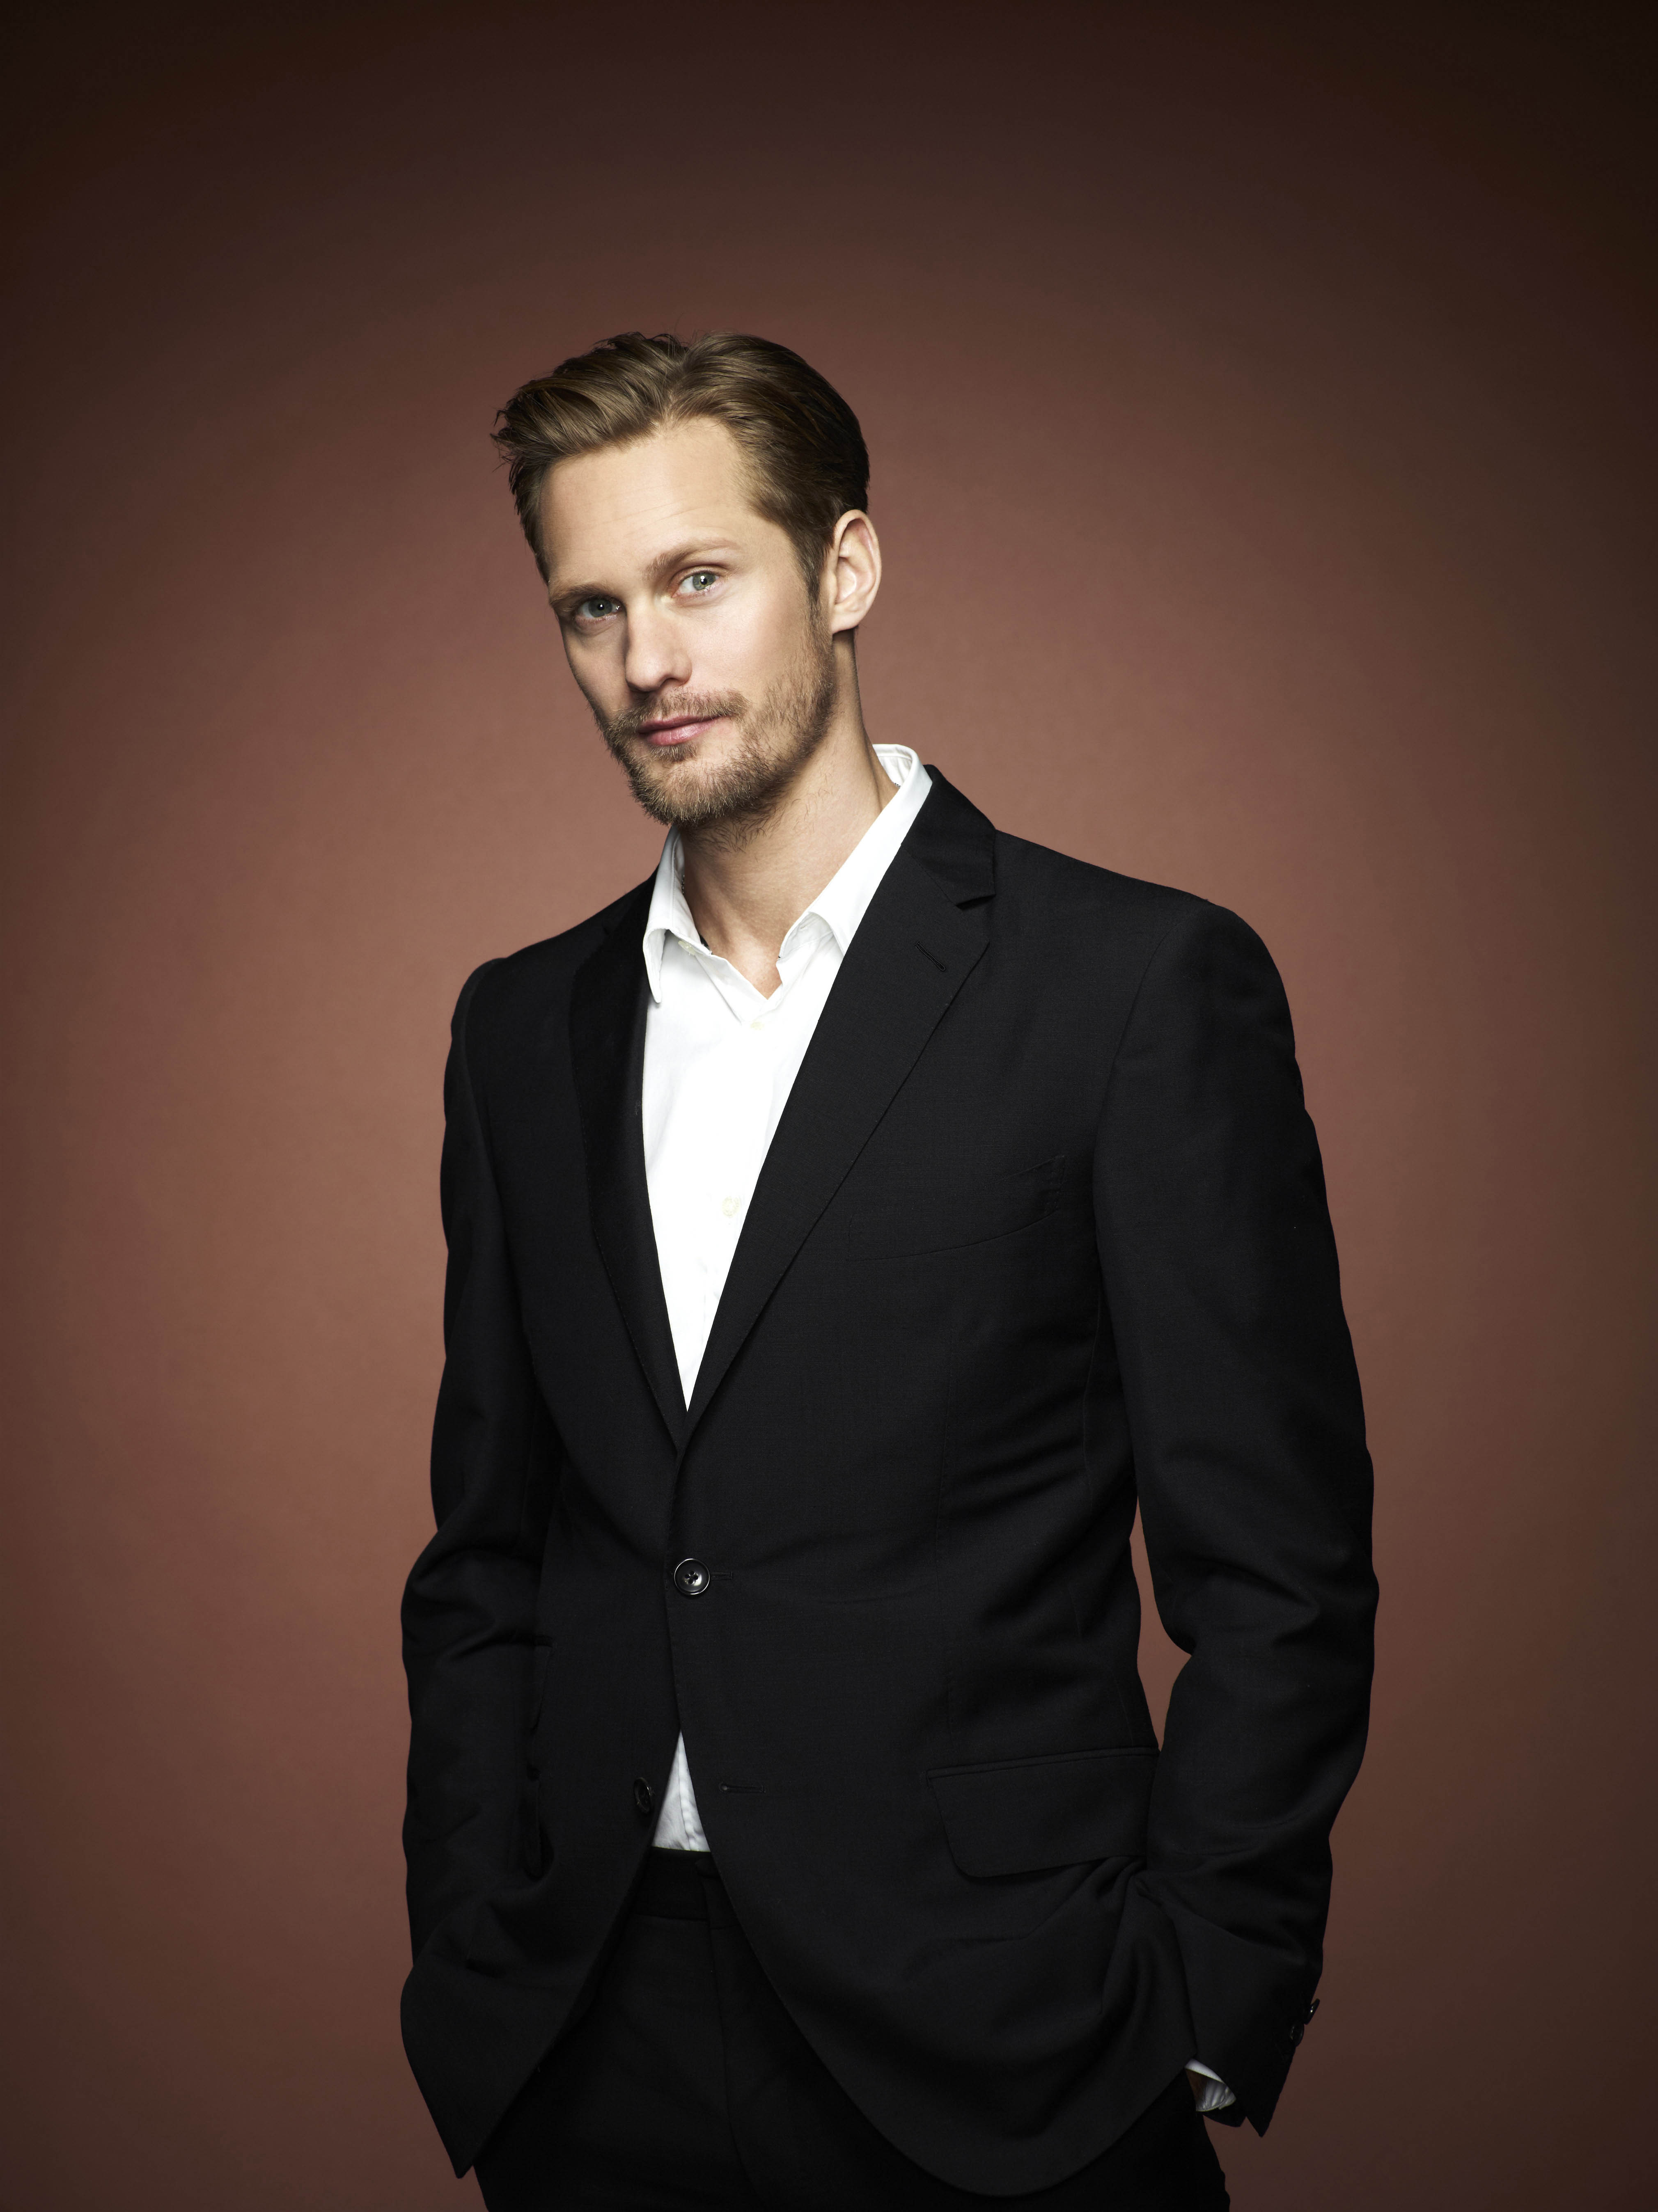 Alexander Skarsgard photo, pics, wallpaper - photo #